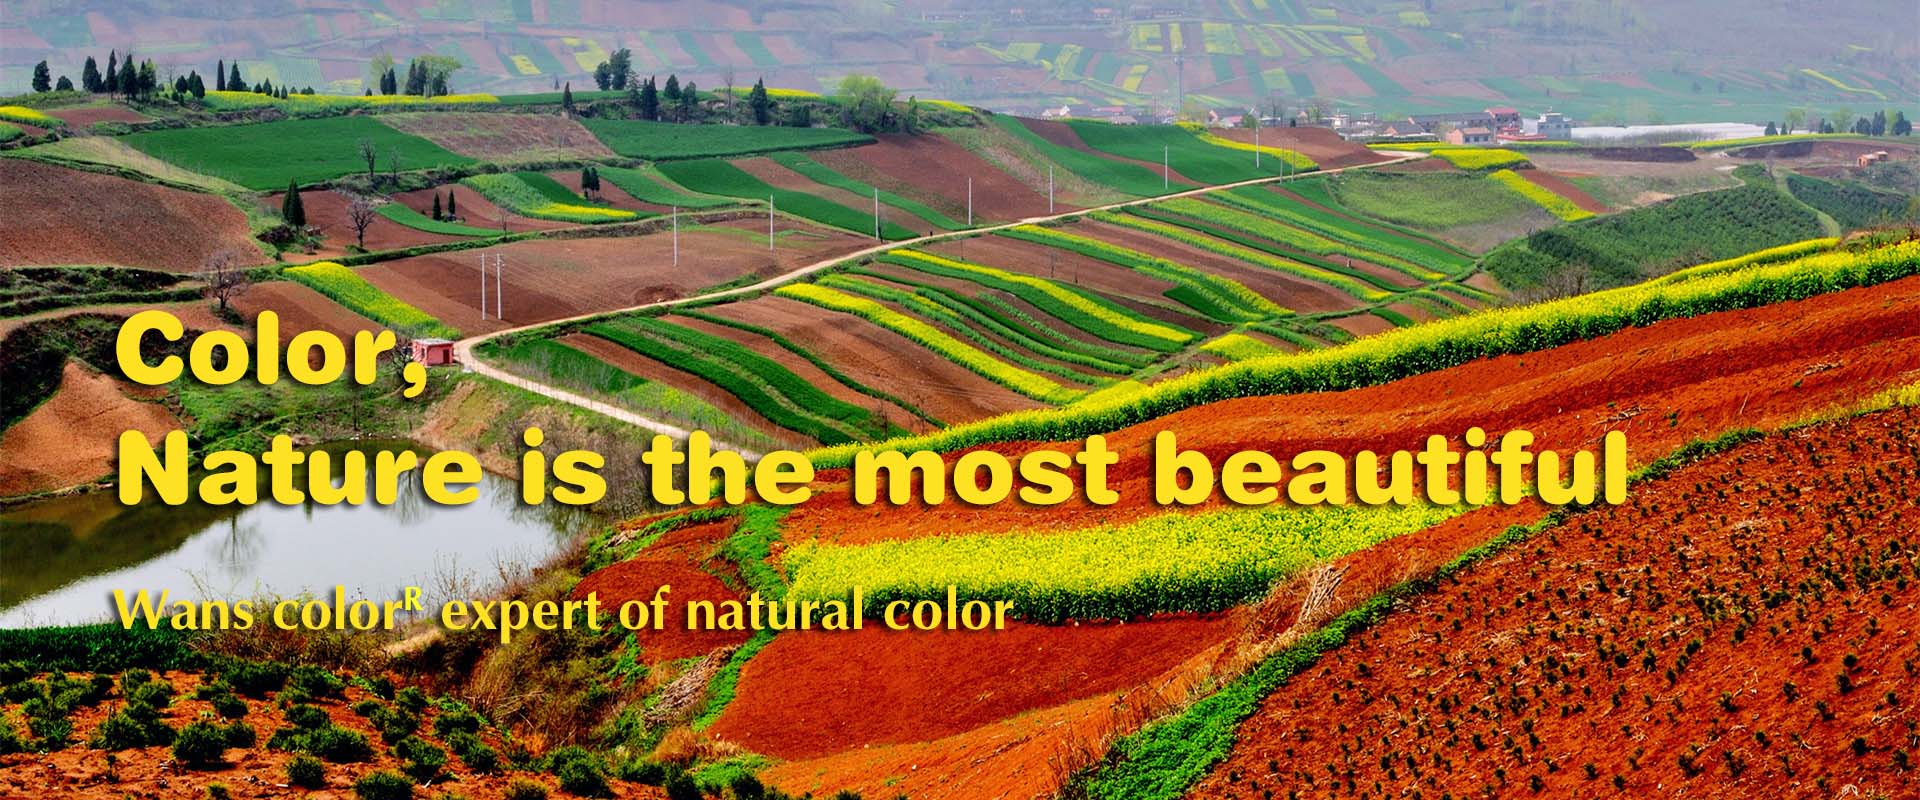 color natural is the best beautiful